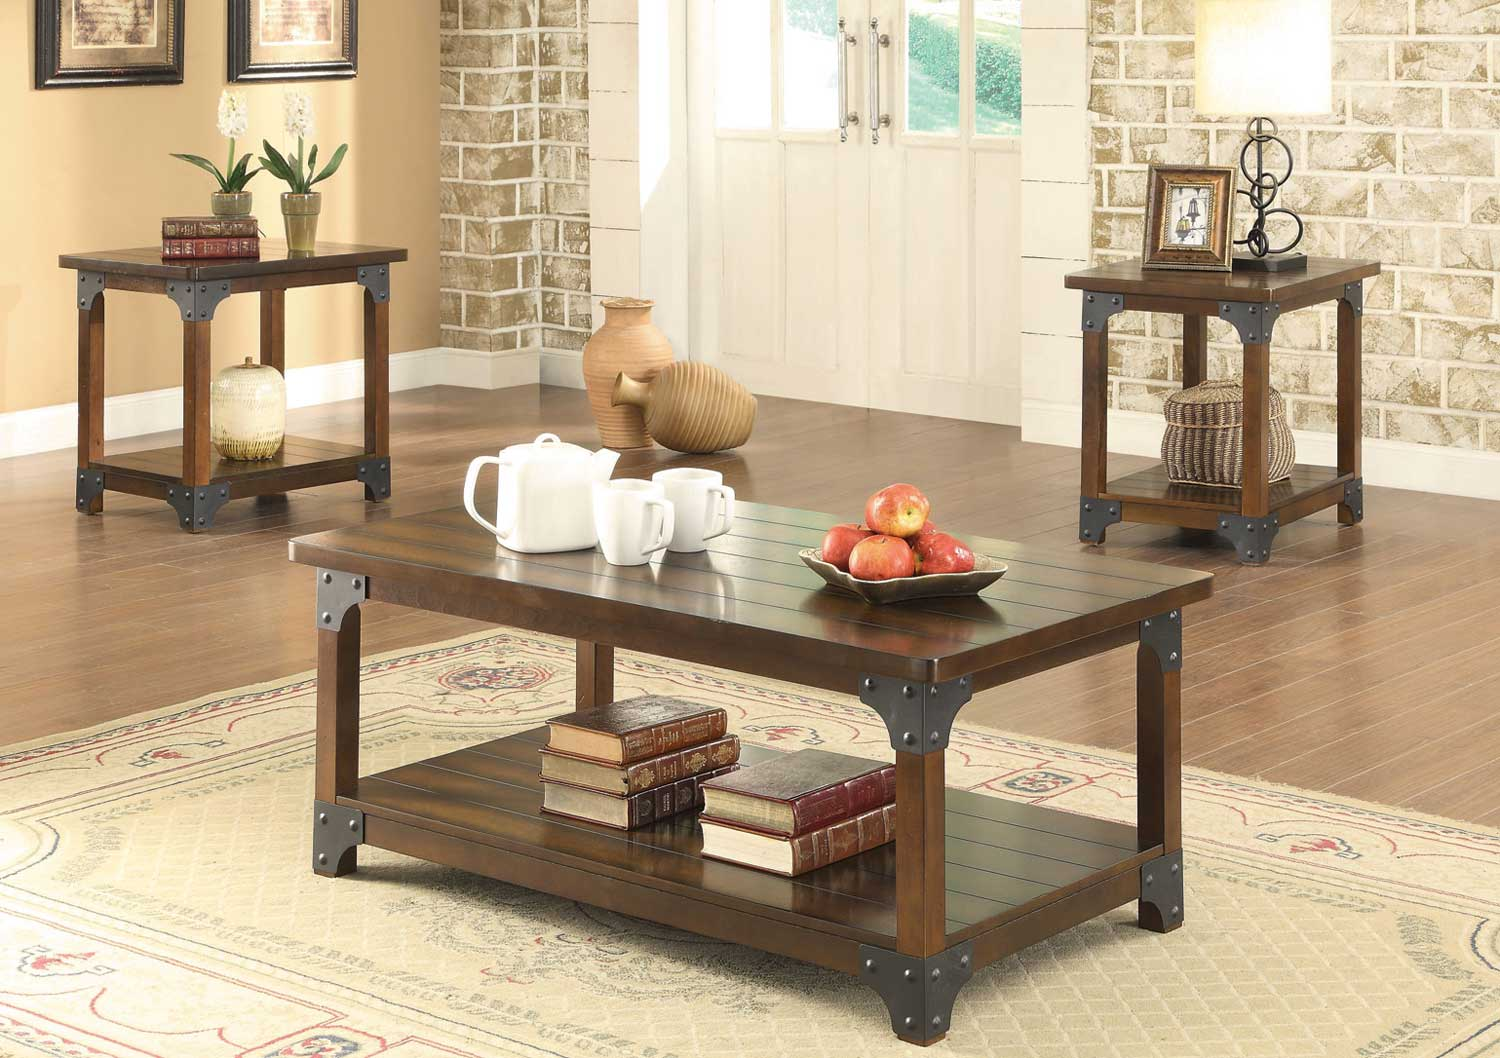 Coaster 703587 3 PC Coffee Table Set - Tobacco Brown